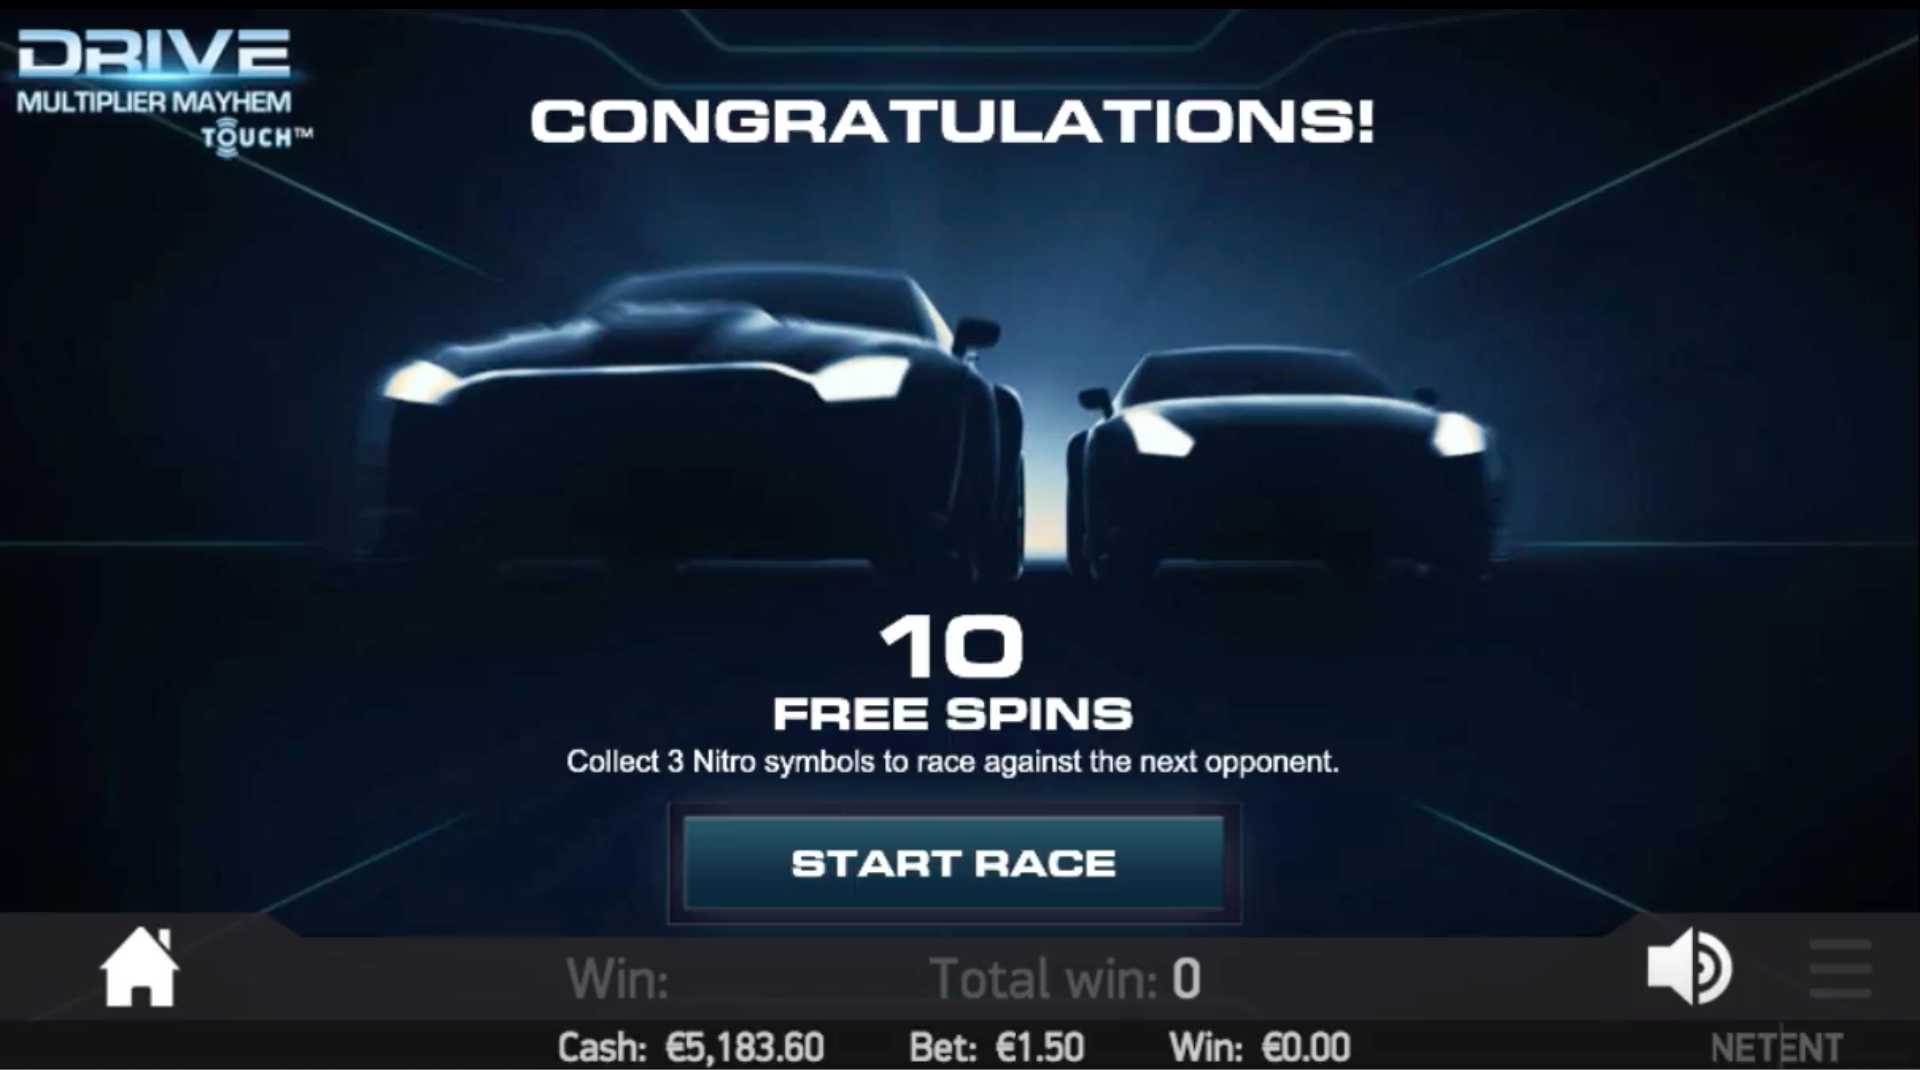 Drive touch - 10 Free Spins